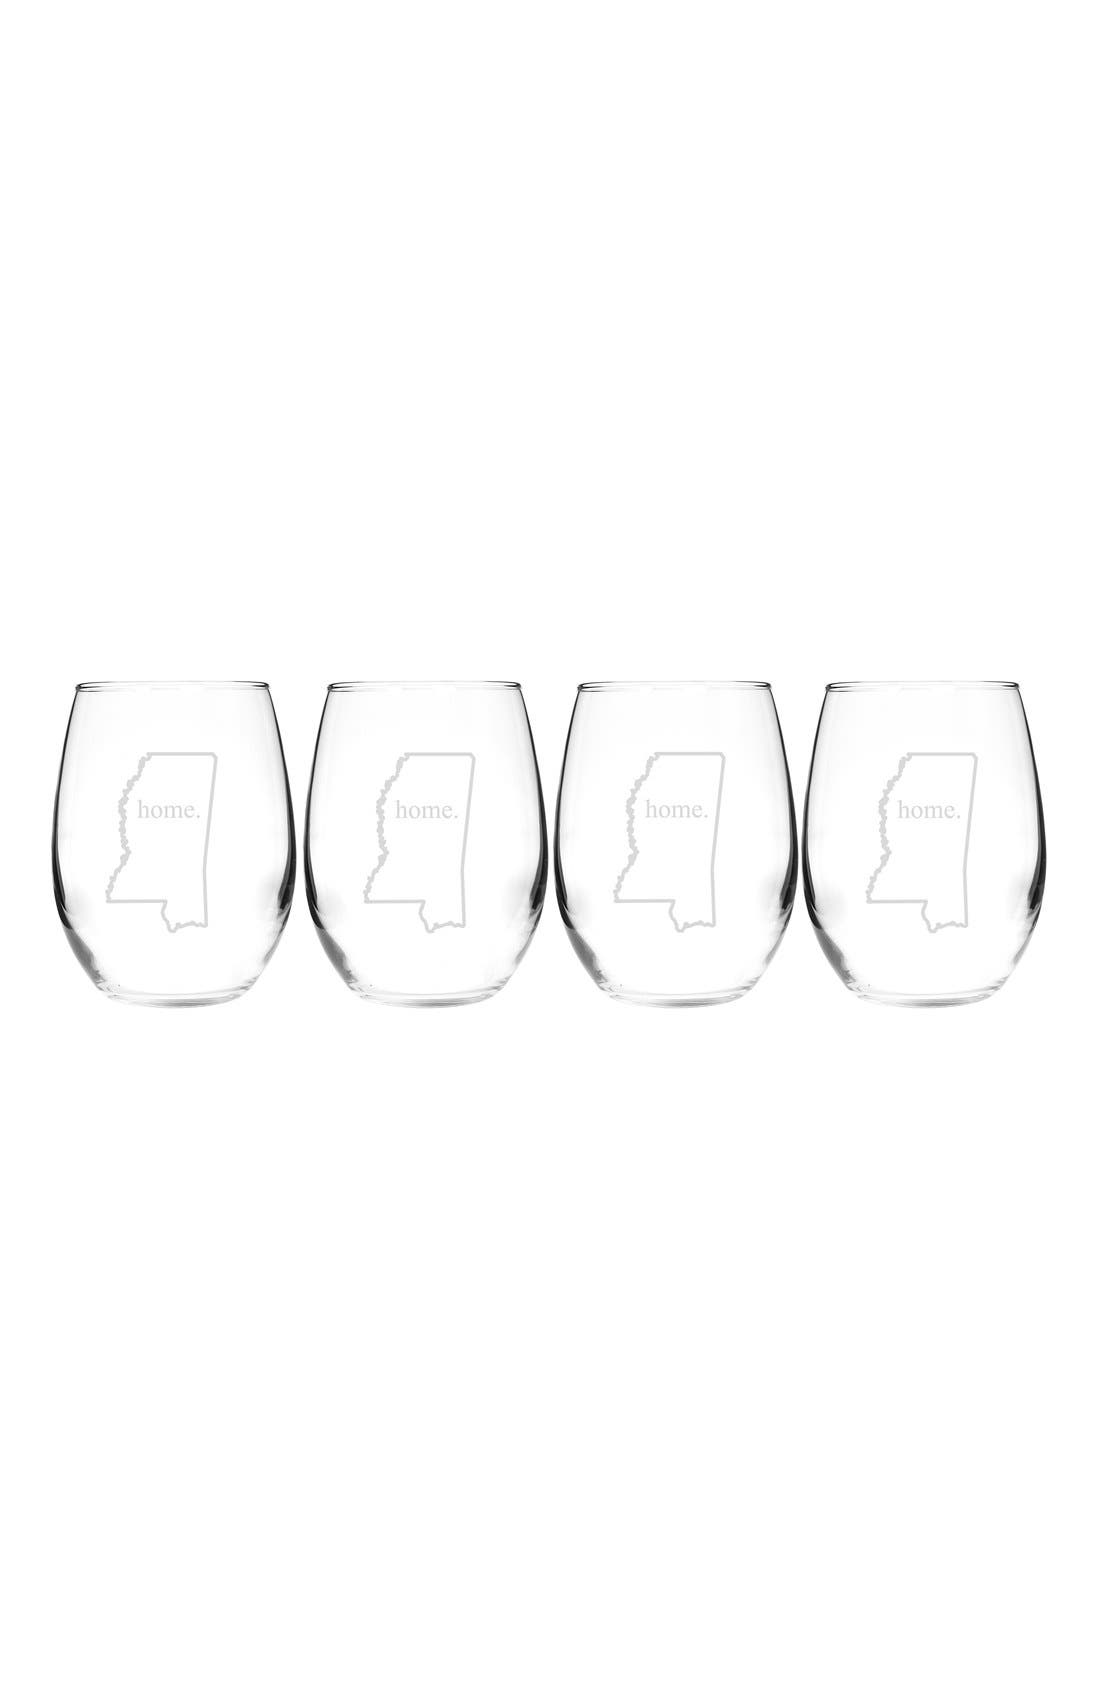 Home State Set of 4 Stemless Wine Glasses,                             Main thumbnail 26, color,